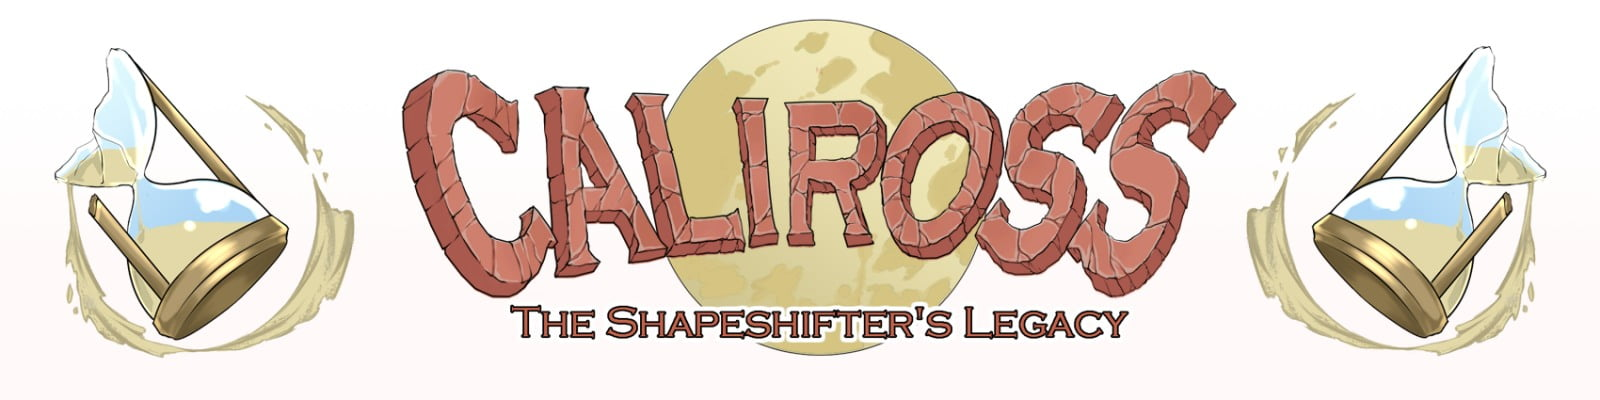 Caliross, The Shapeshifter's Legacy Adult Game Cover